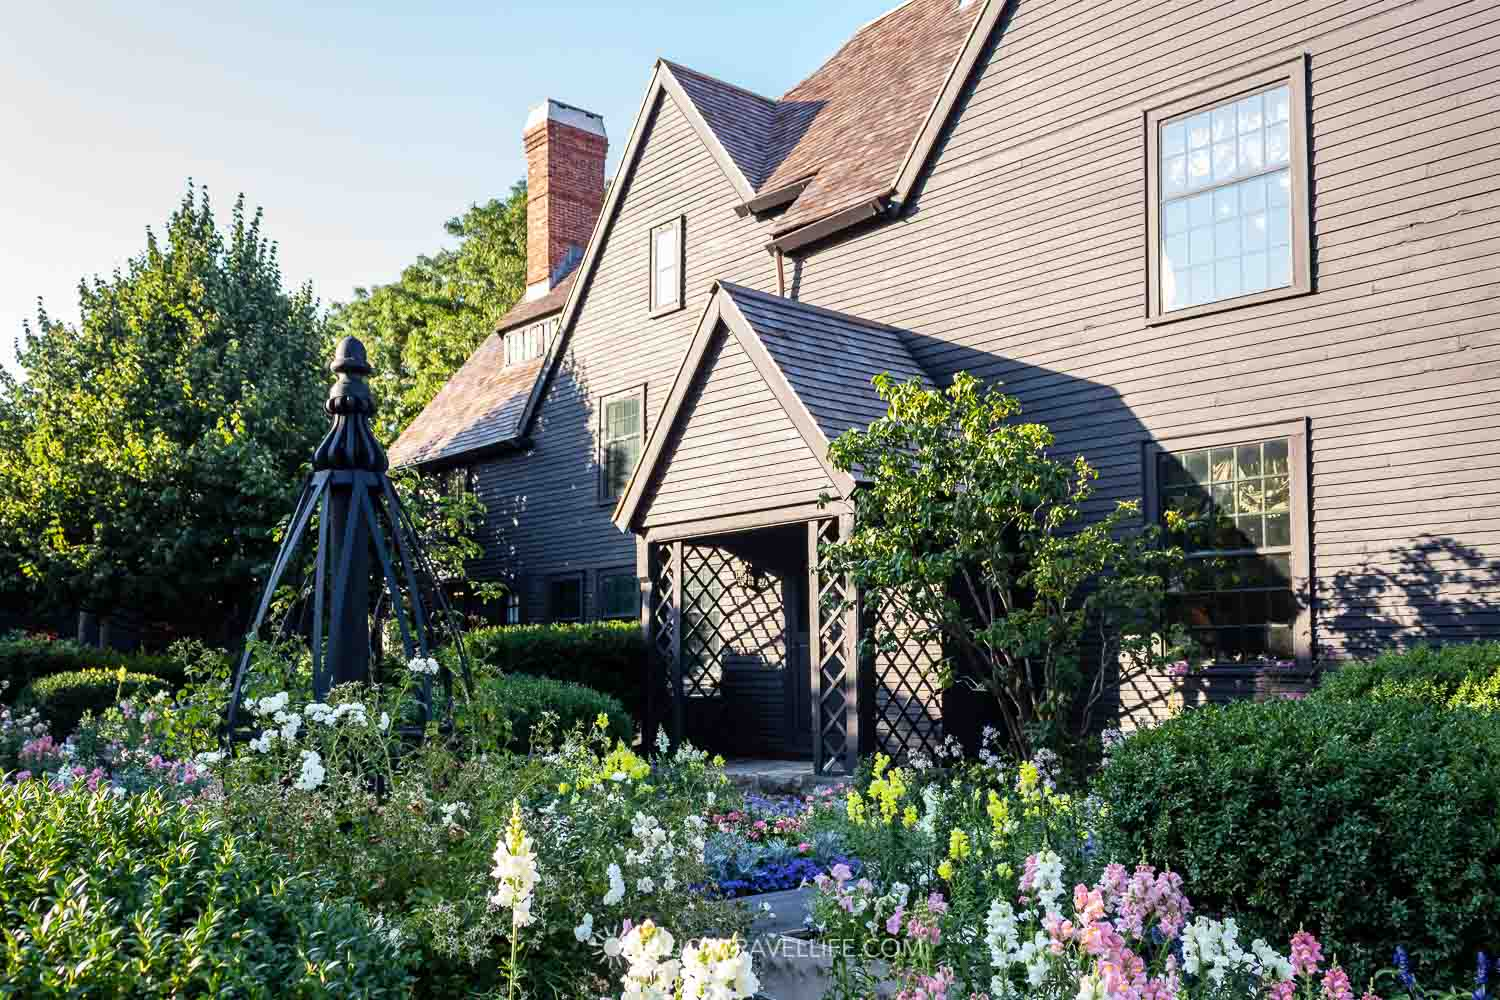 Seaside gardens in bloom at the historic House of the Seven Gables in Salem Massachusetts